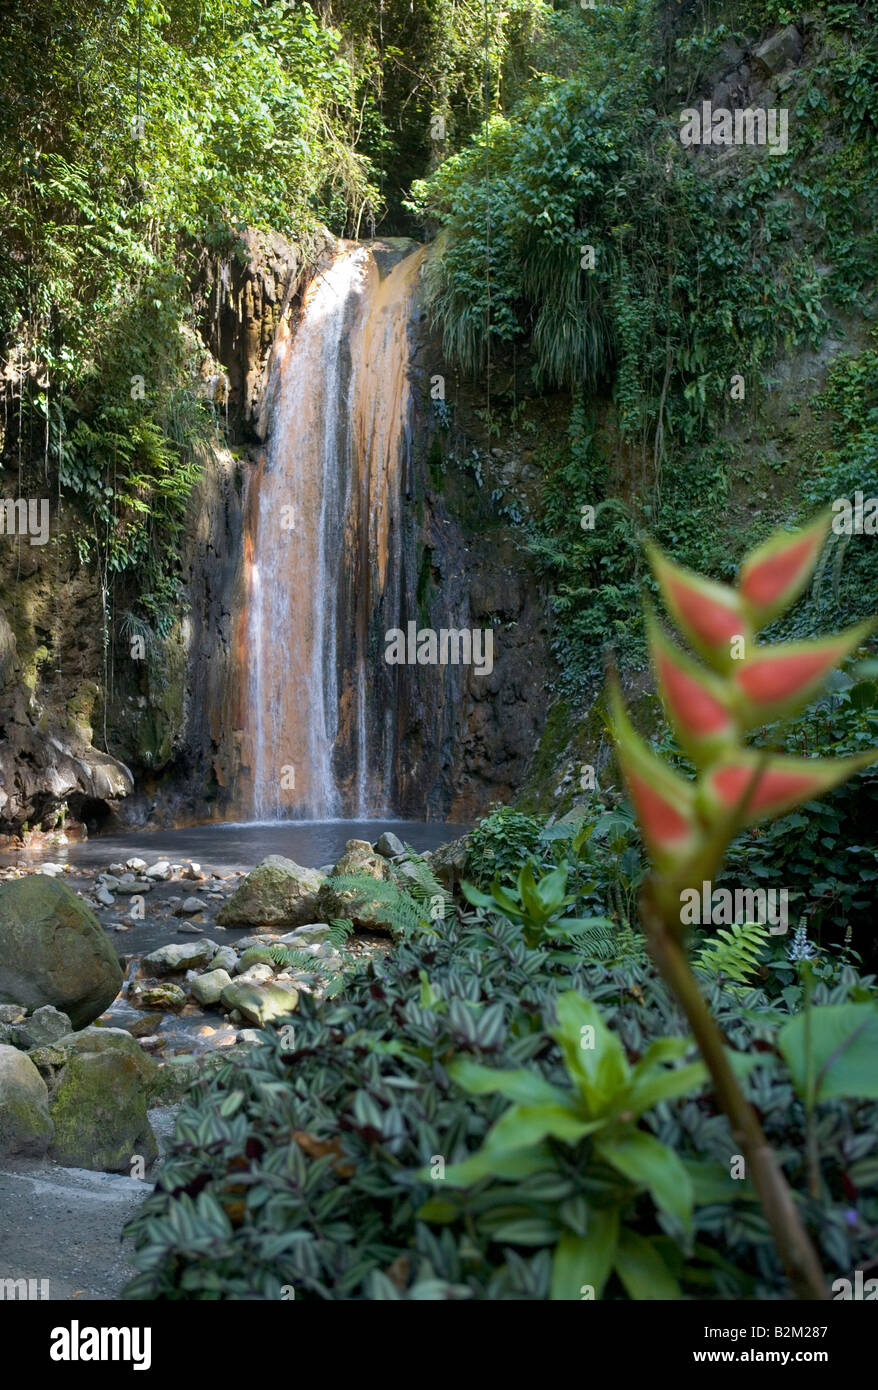 The hot water mineral waterfalls at the Botanical Gardens in St Lucia West Indies - Stock Image